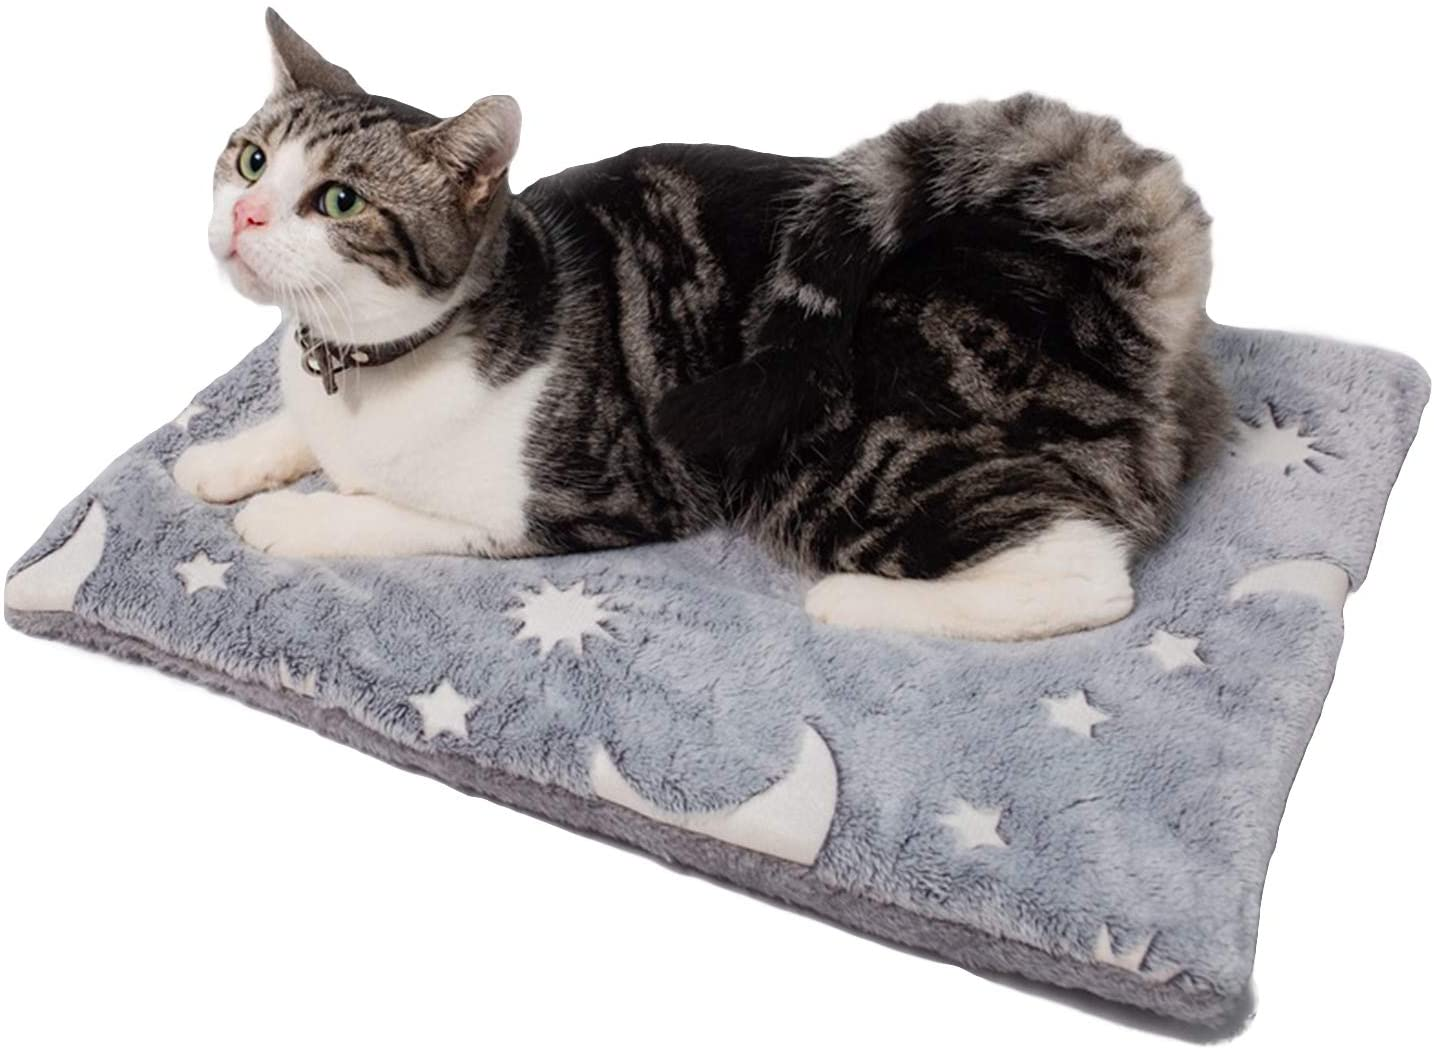 SEIS Reflective Pet Warm Mat Winter Dog Sleeping Pad Flannel Cat Bed Star Moon Design for Small Medium Large Dogs Cats